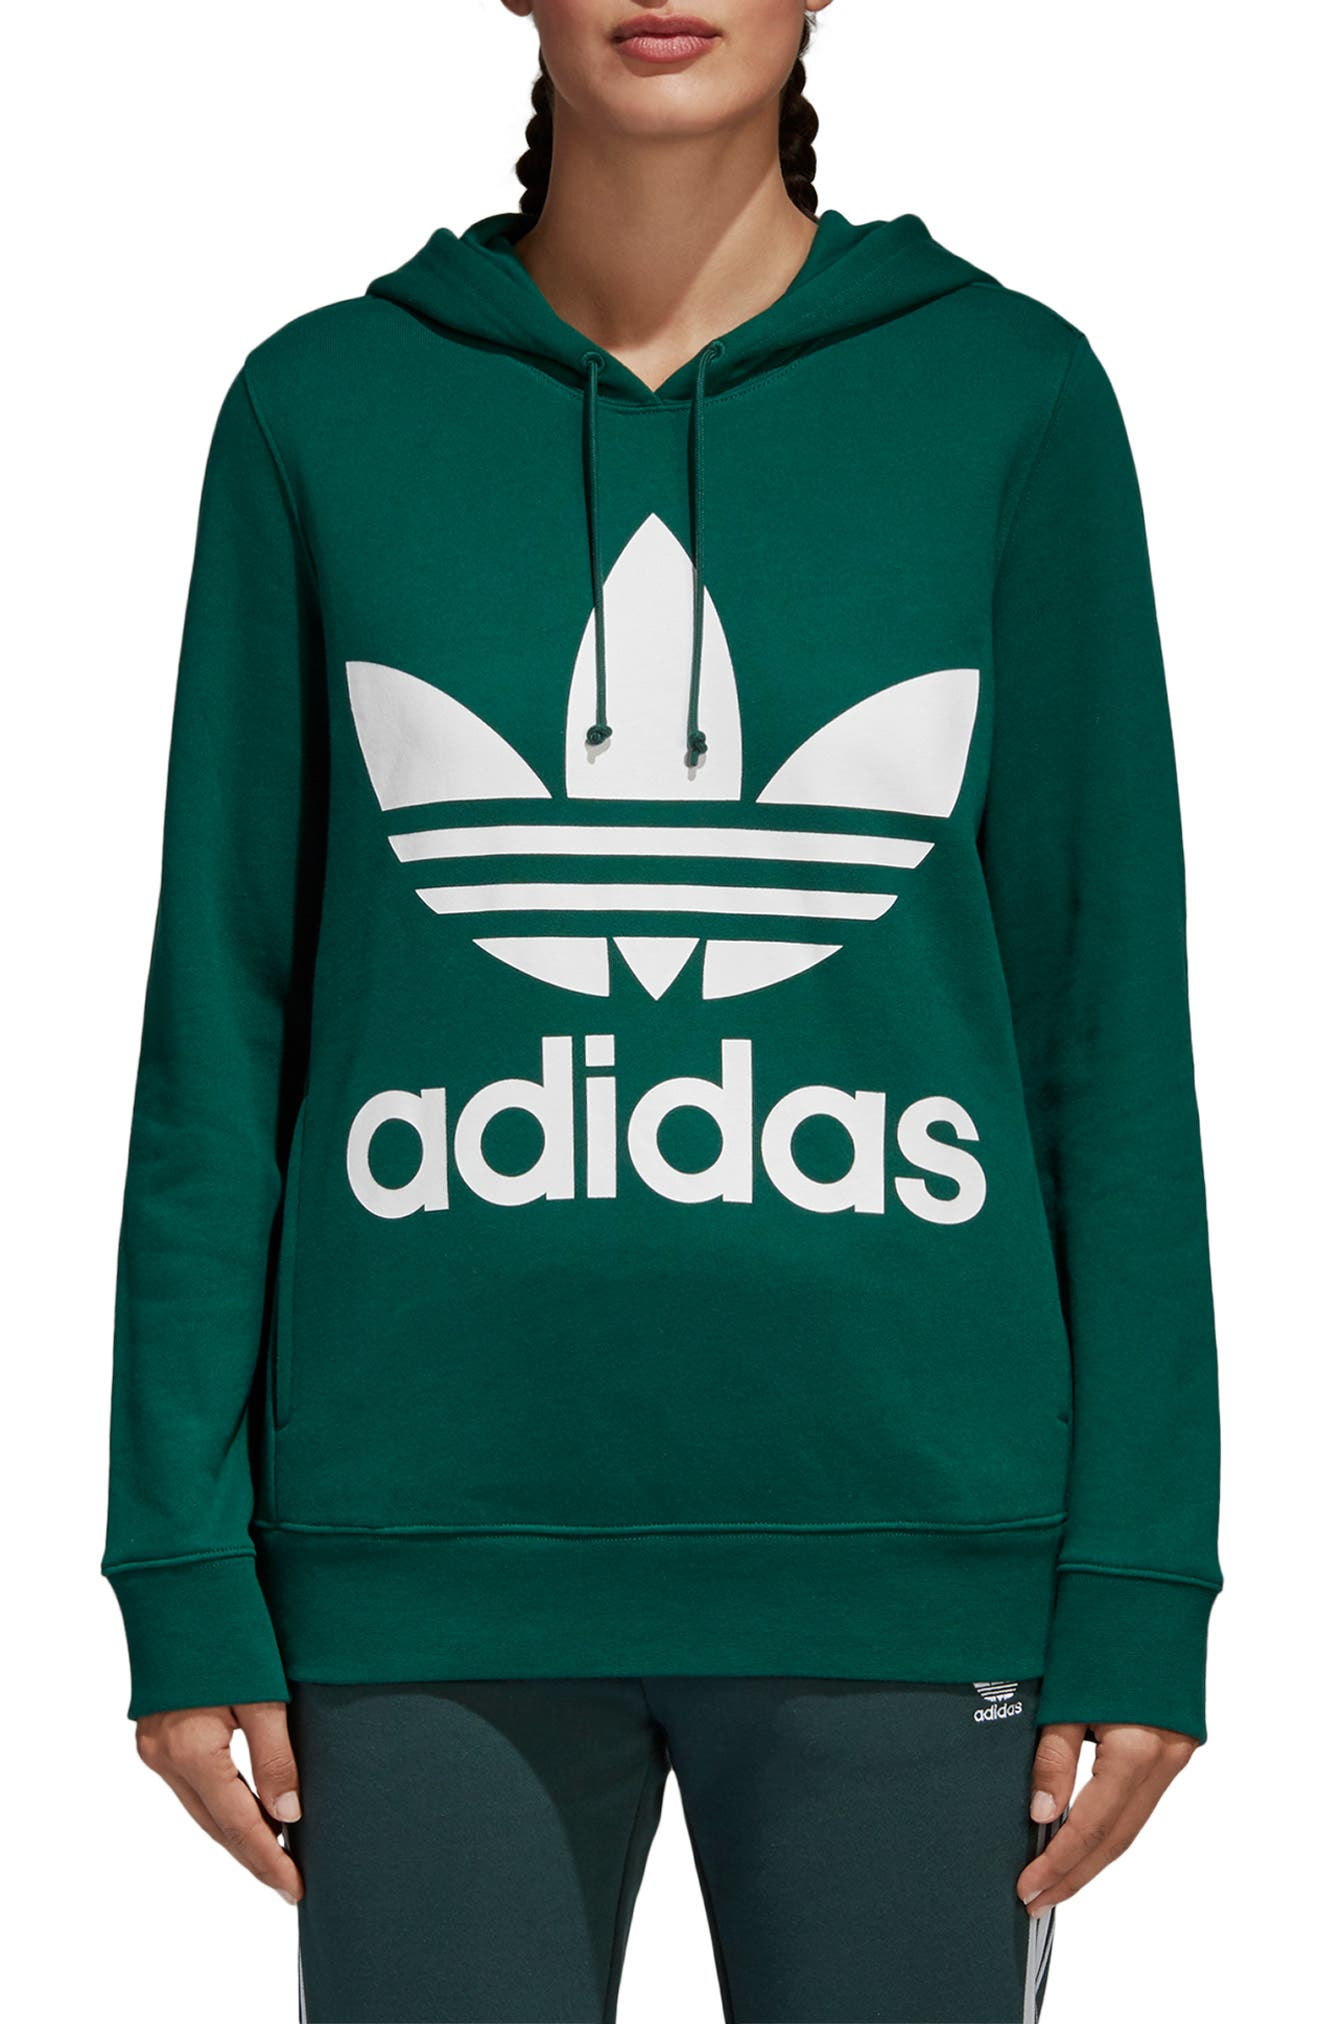 ADIDAS ORIGINALS, adidas Trefoil Logo Hoodie, Main thumbnail 1, color, COLLEGIATE GREEN